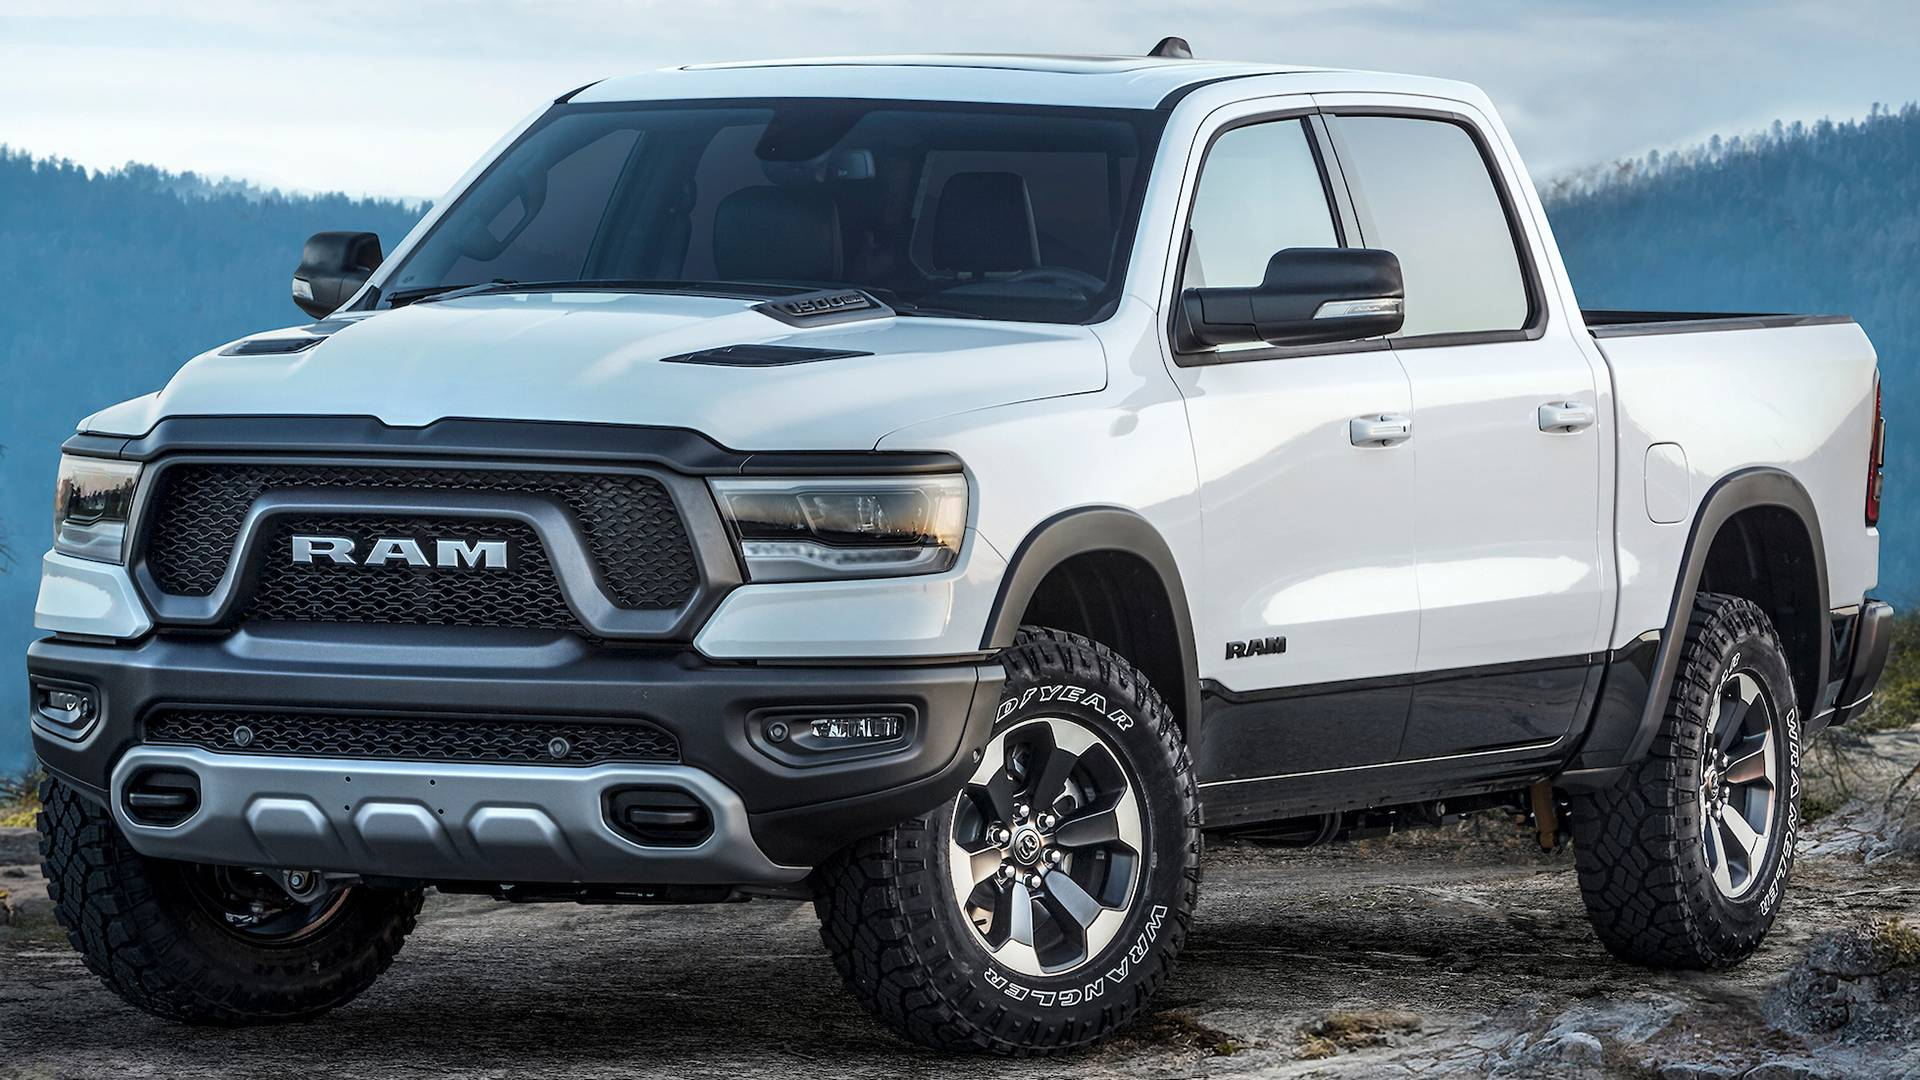 2019 Ram 1500 Rebel 12 Arrives With Better Tech For Rugged Truck